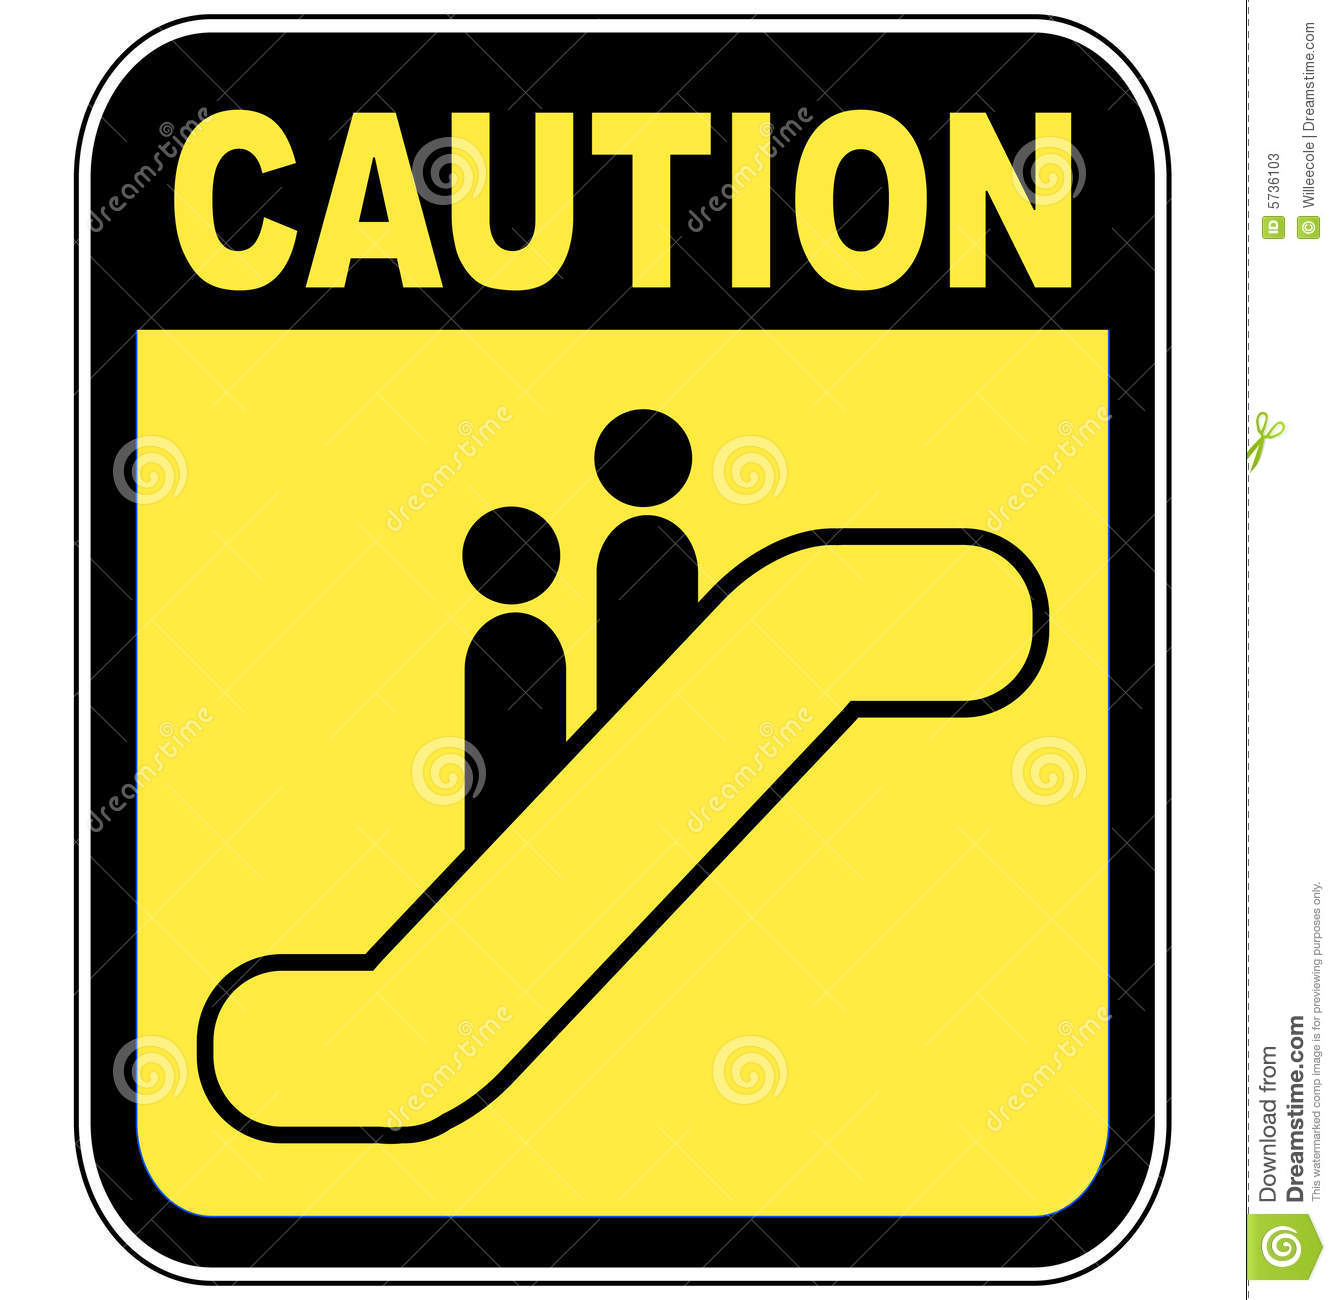 How To Read Floor Plans Caution Escalator Sign Stock Photos Image 5736103